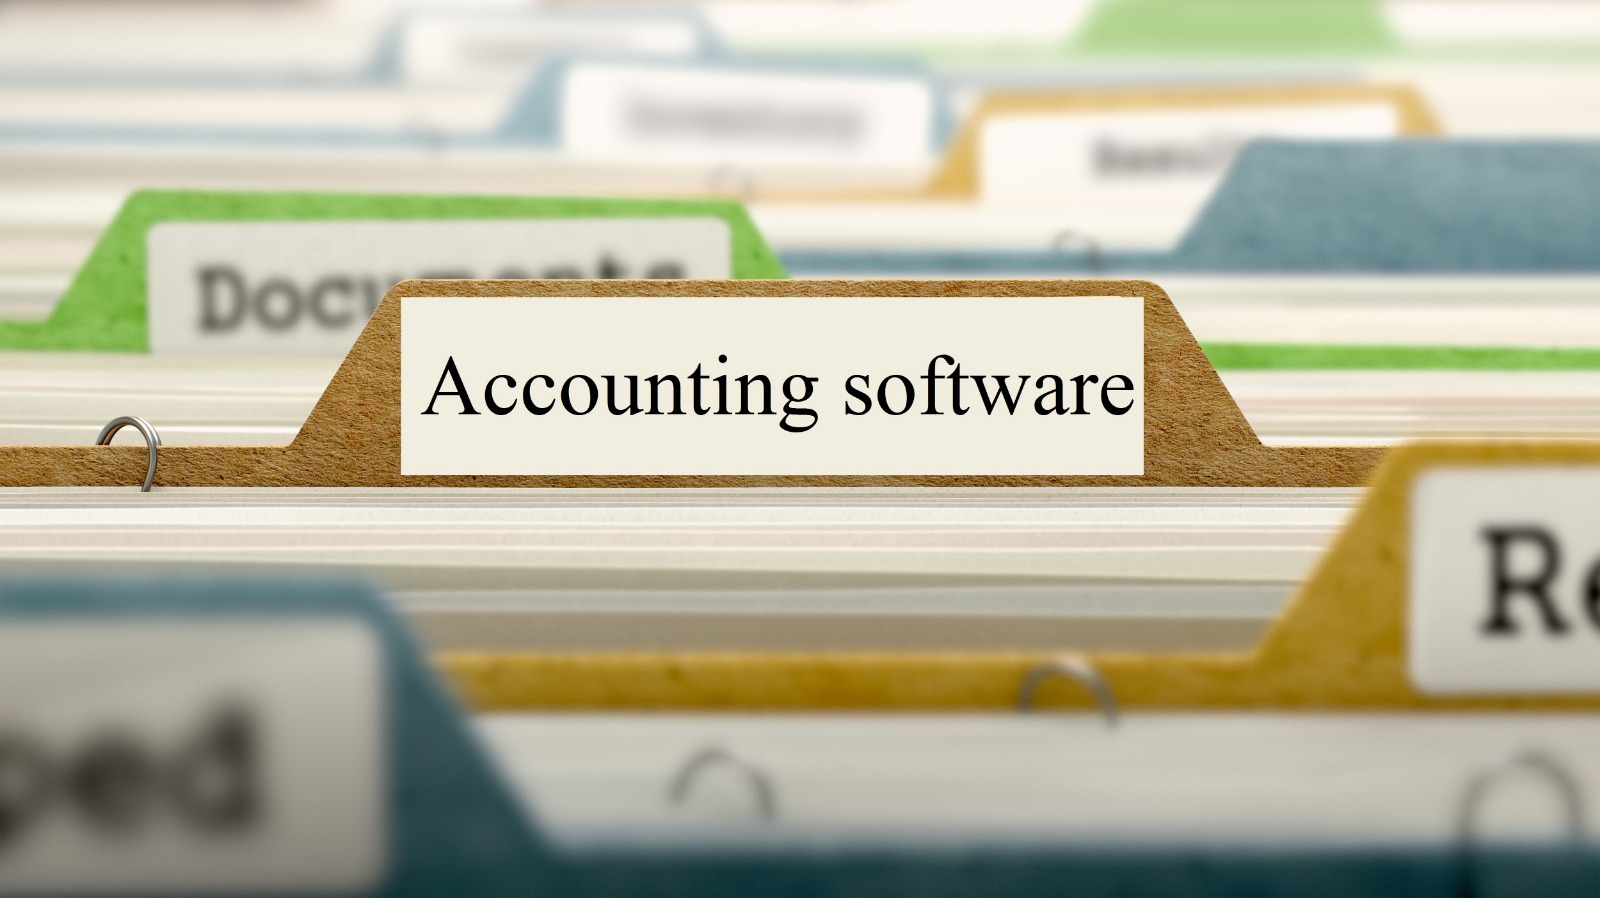 What is the best online accounting software for small business